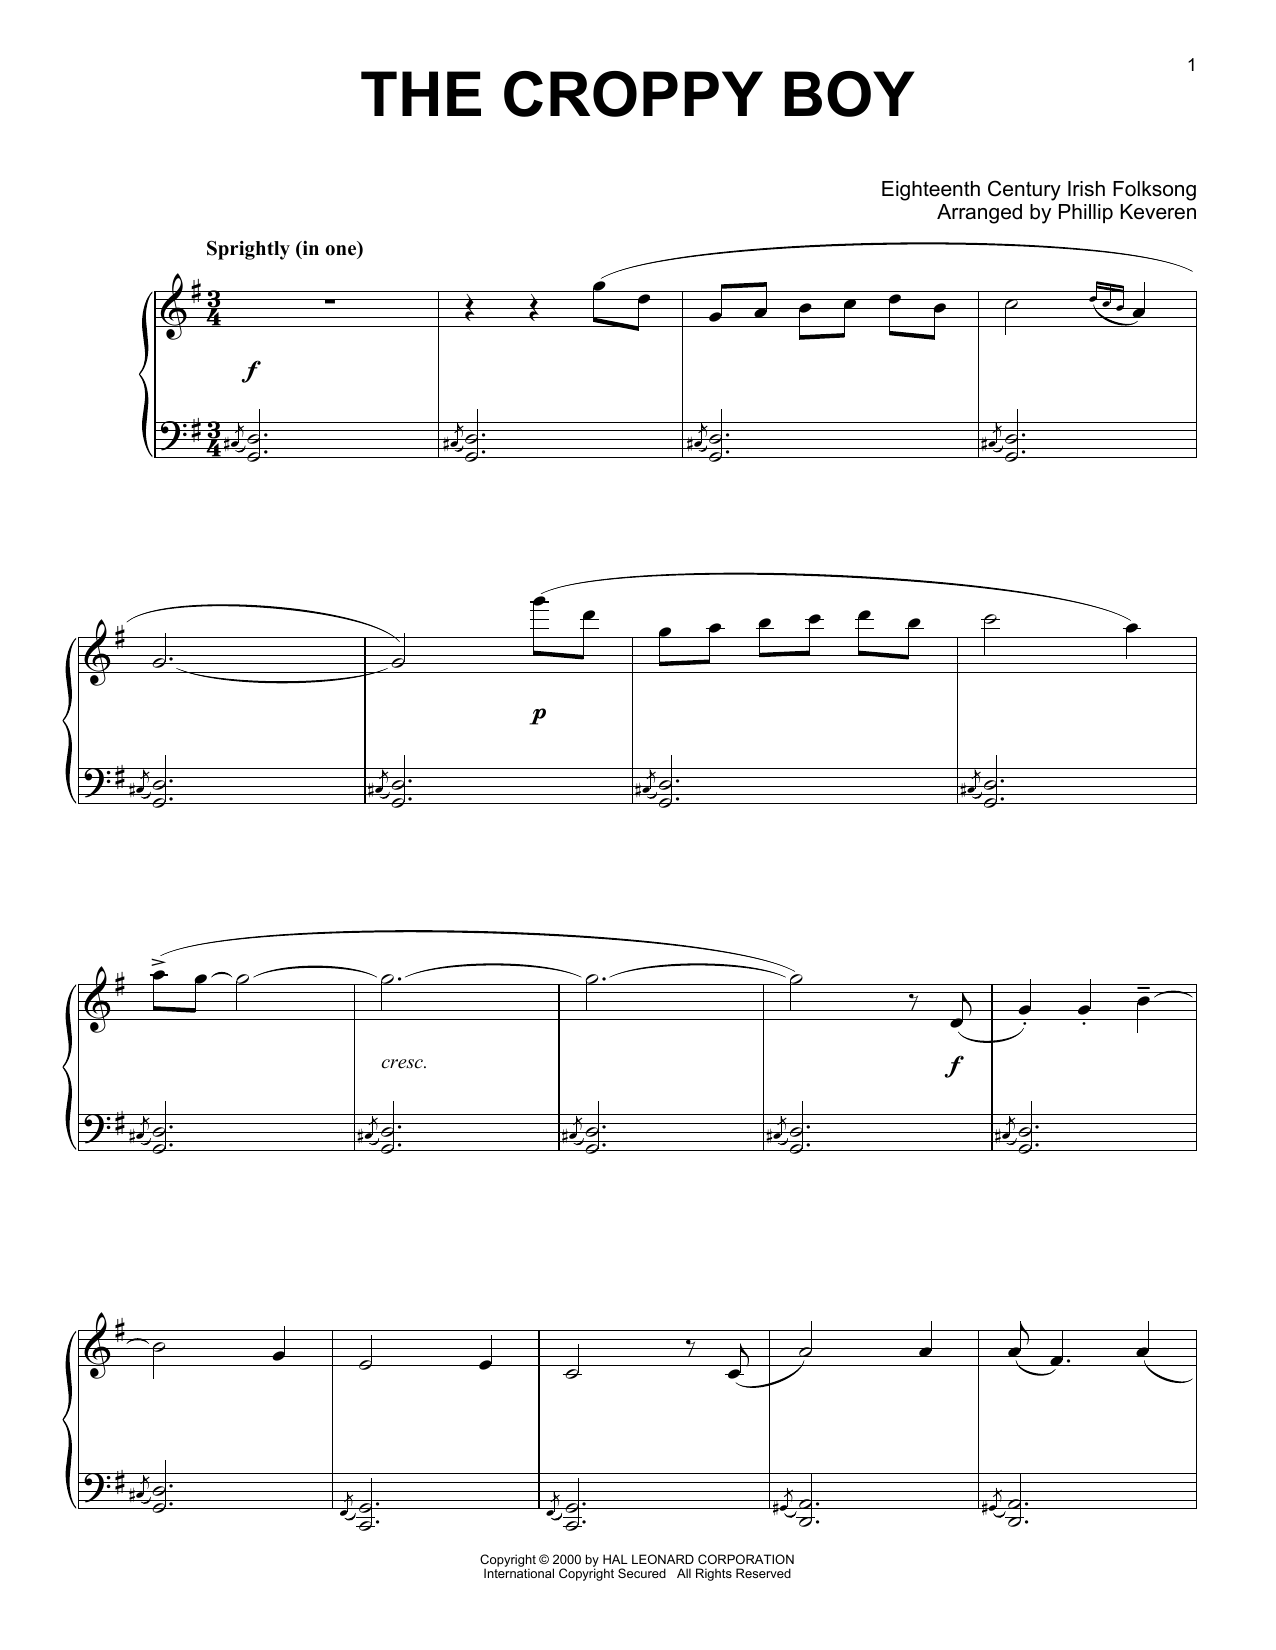 Irish Folksong The Croppy Boy (arr. Phillip Keveren) sheet music notes and chords. Download Printable PDF.